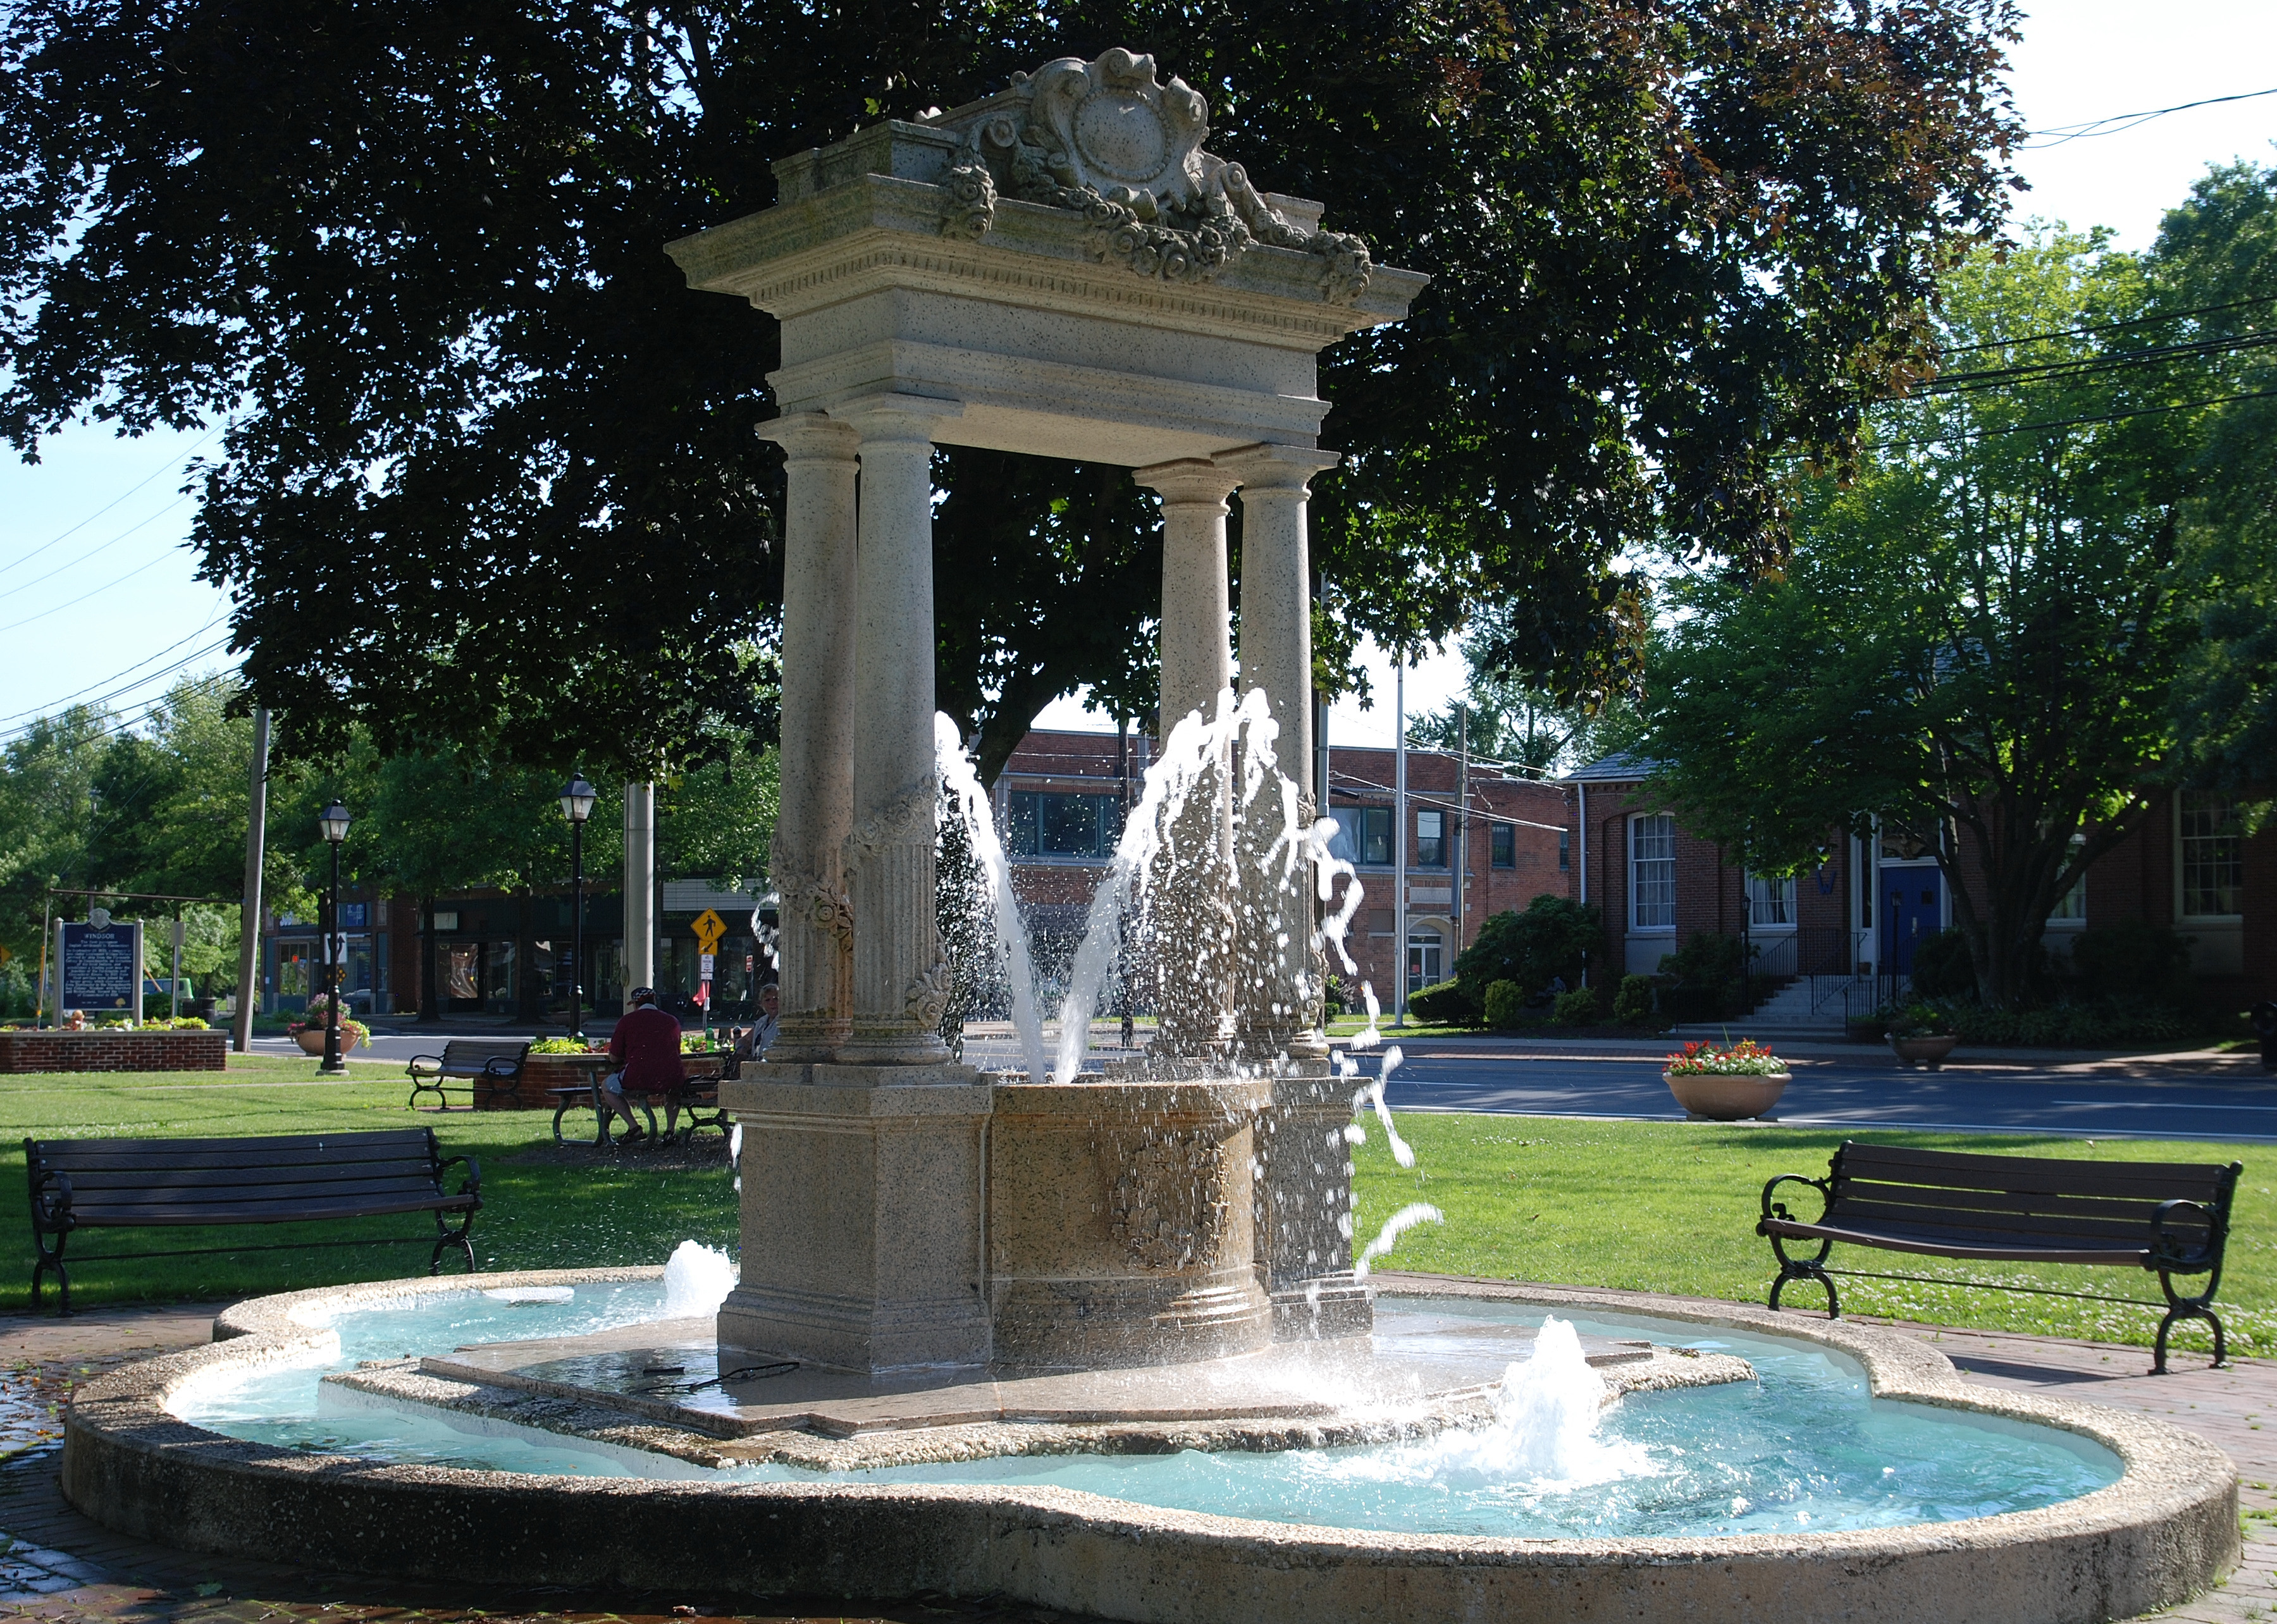 Tiered White Memorial Fountain On State Route 10 Was Dedicated In 1892 In  Memory Of Dr. Roderick White, Town Physician For Almost Half A Century.